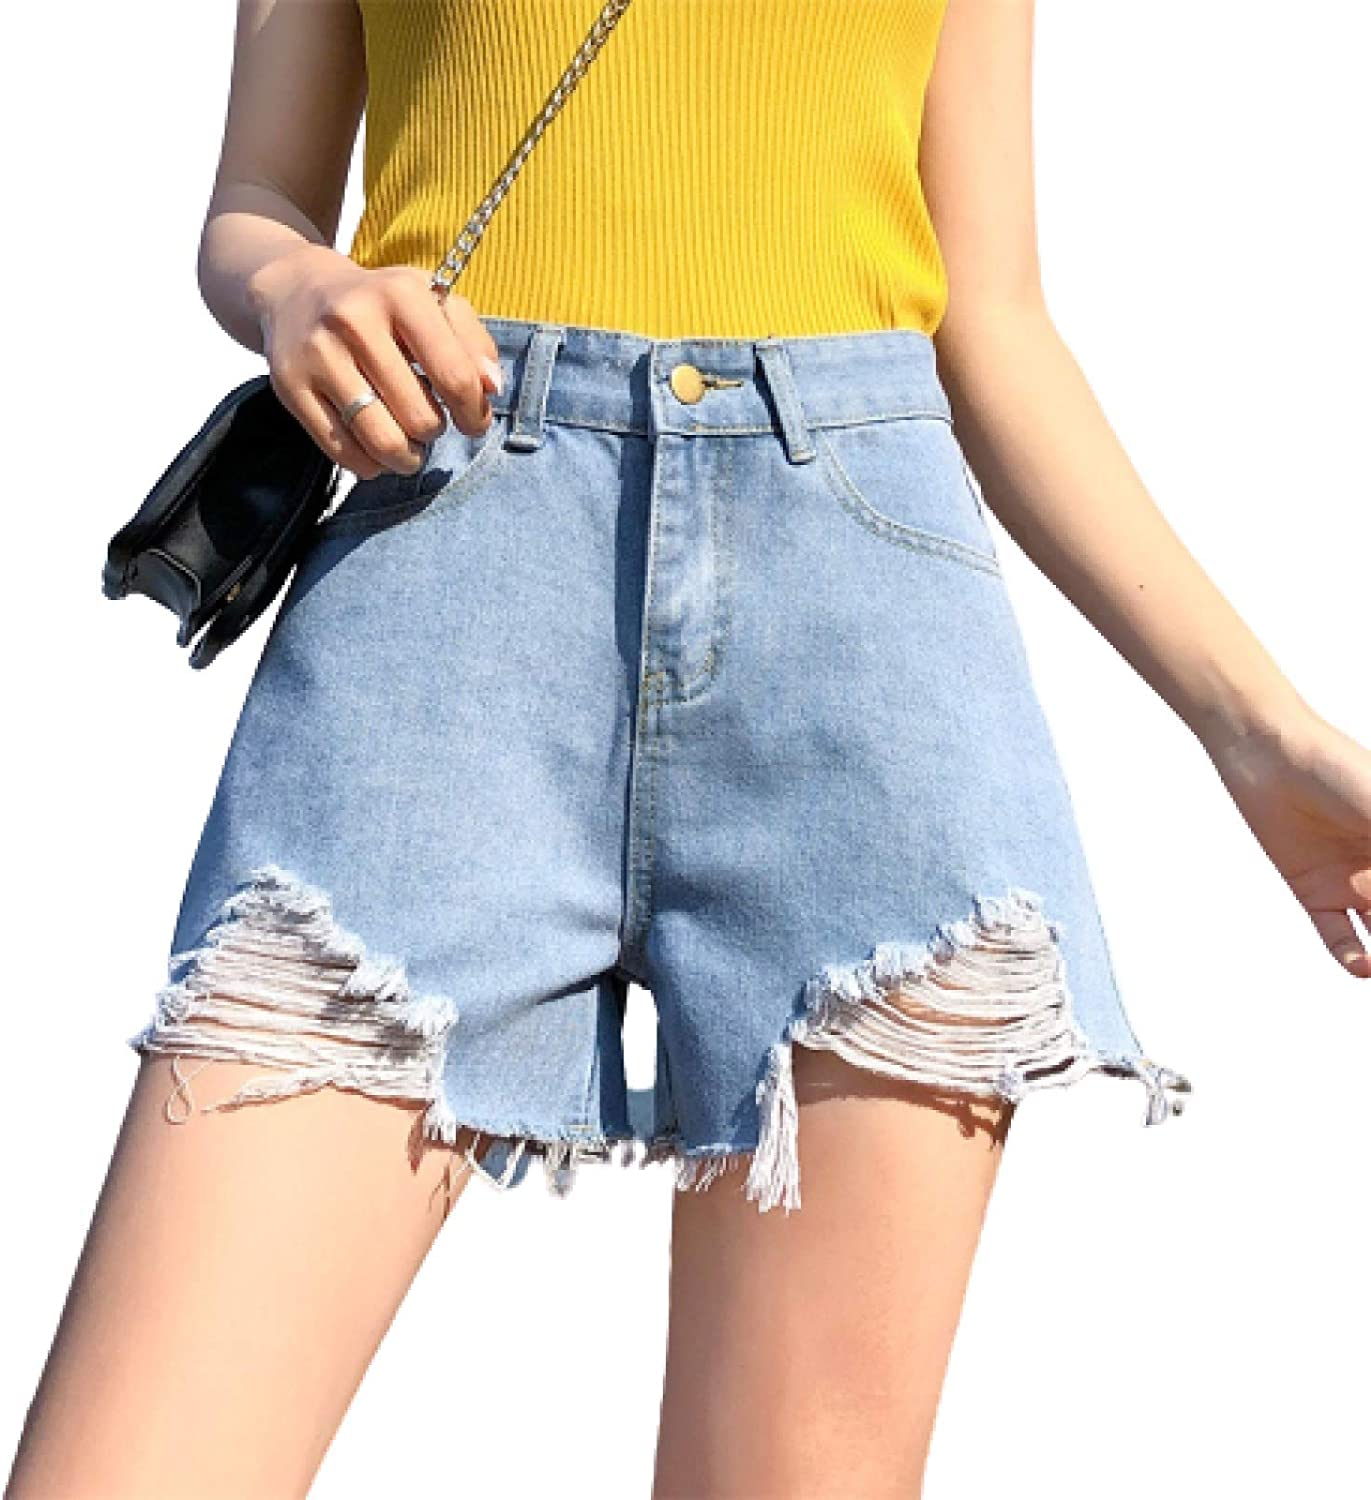 Generico Denim Shorts Women Summer Ripped High Waist Slim Fit Loose Wide Legs Outing